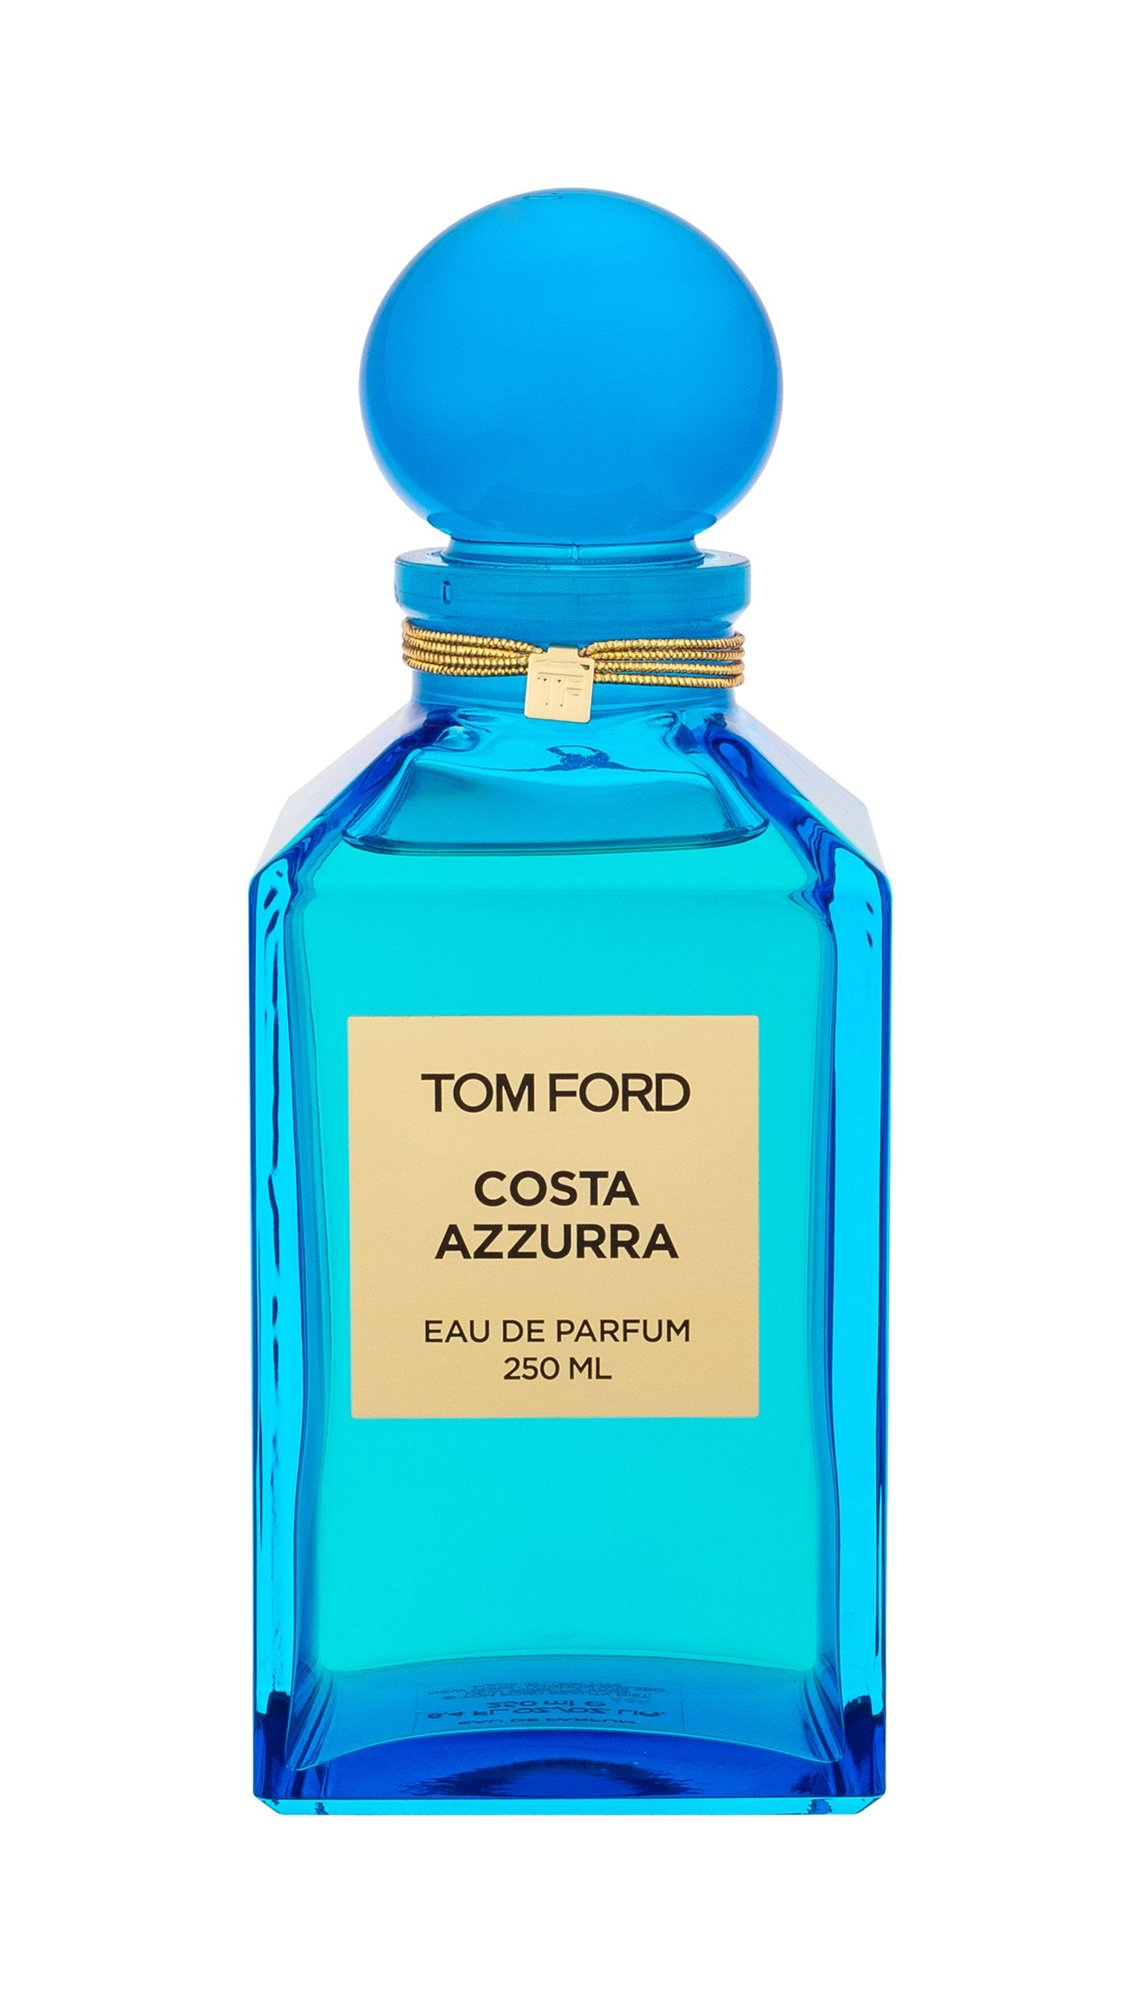 TOM FORD Costa Azzurra Eau de Parfum 250ml